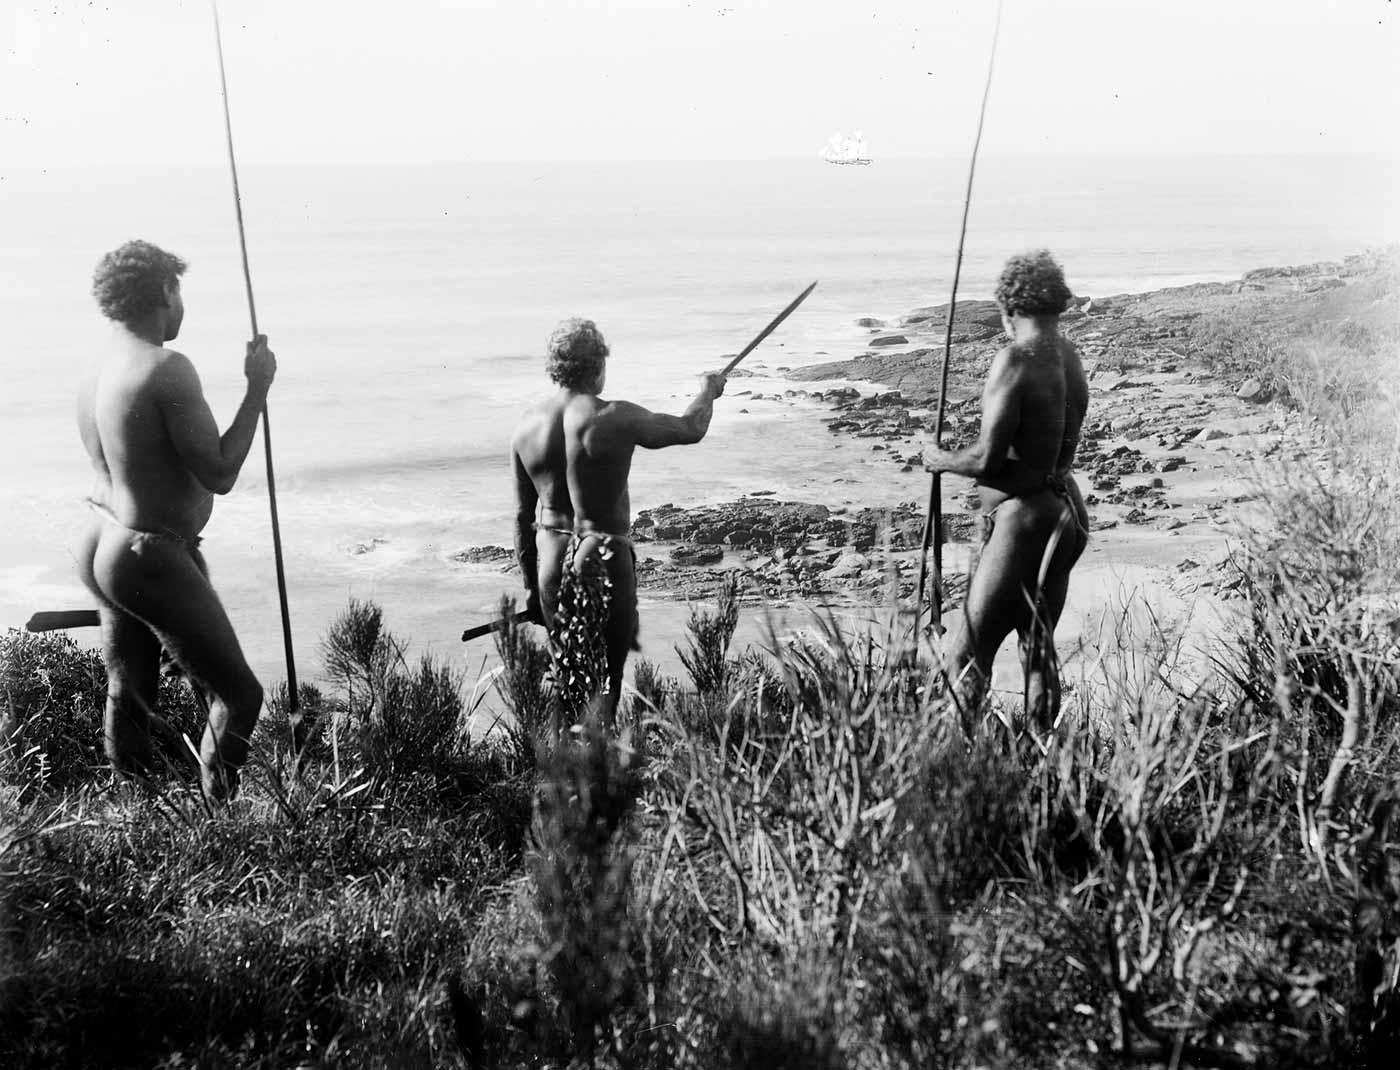 Black and white photograph of three men with spears overlooking a rocky beach with a sailing ship on the horizon. One man is indicating with his spear towards the ship. - click to view larger image